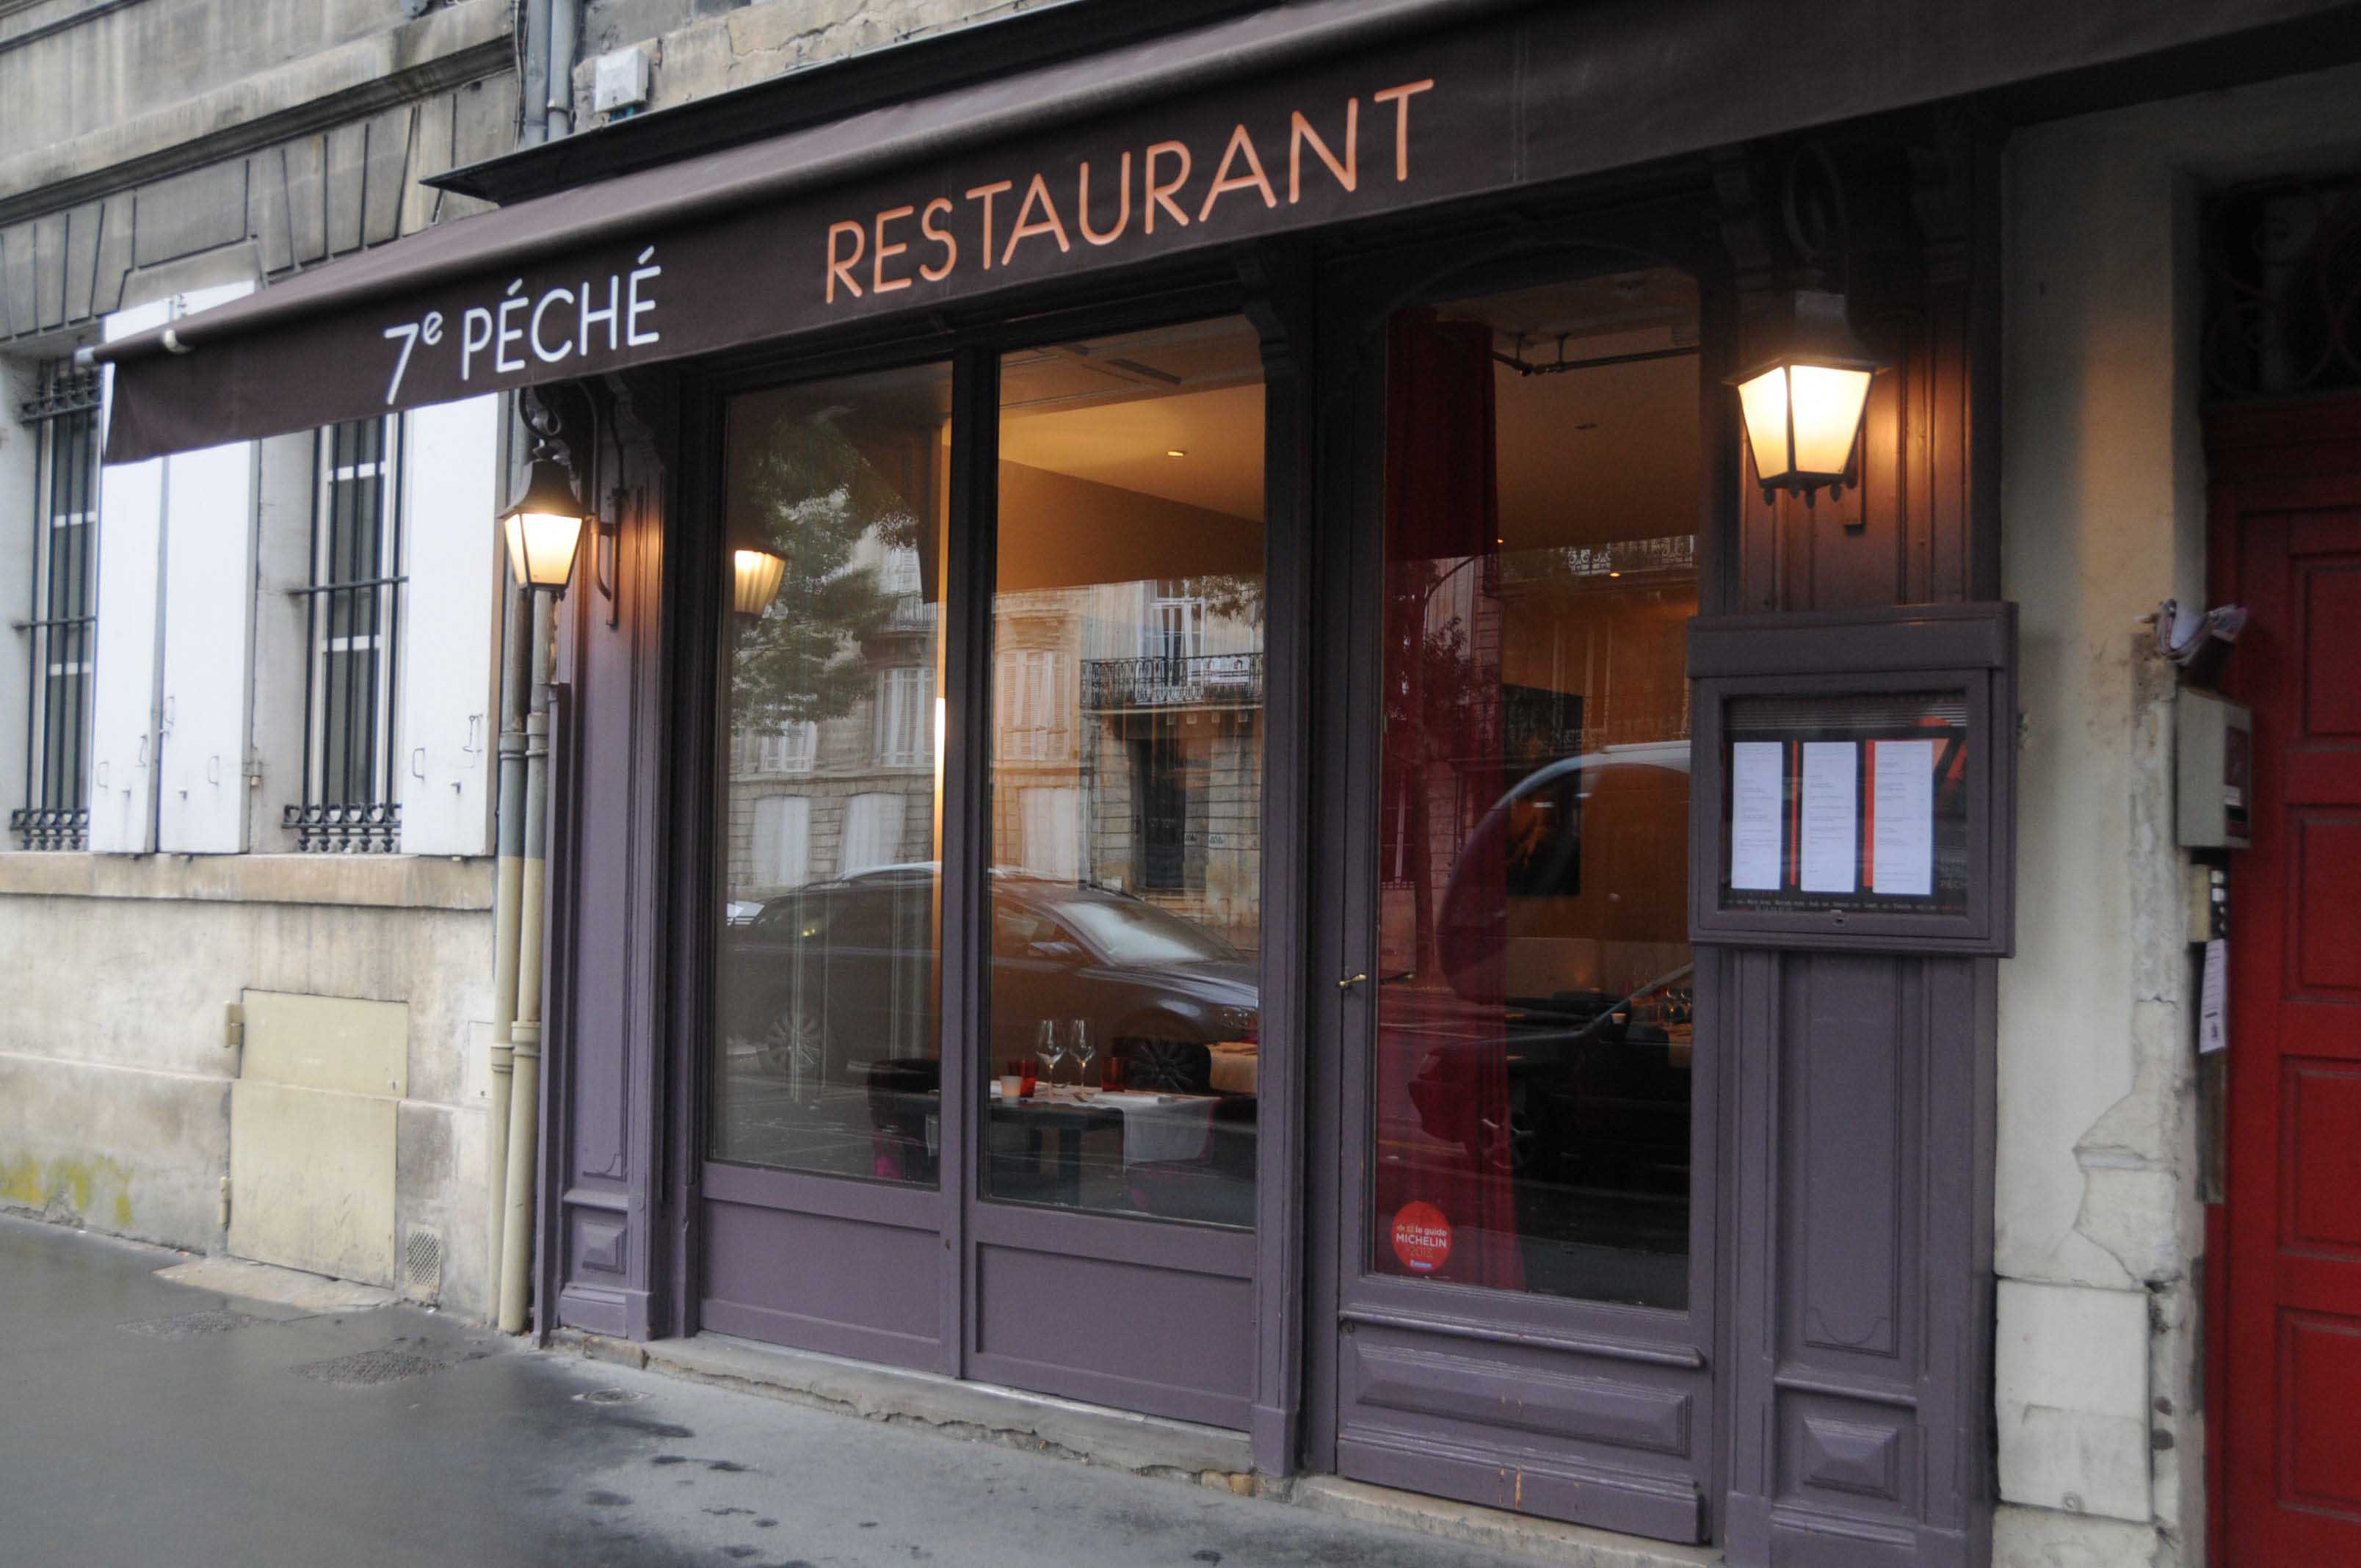 Restaurant rencontre bordeaux